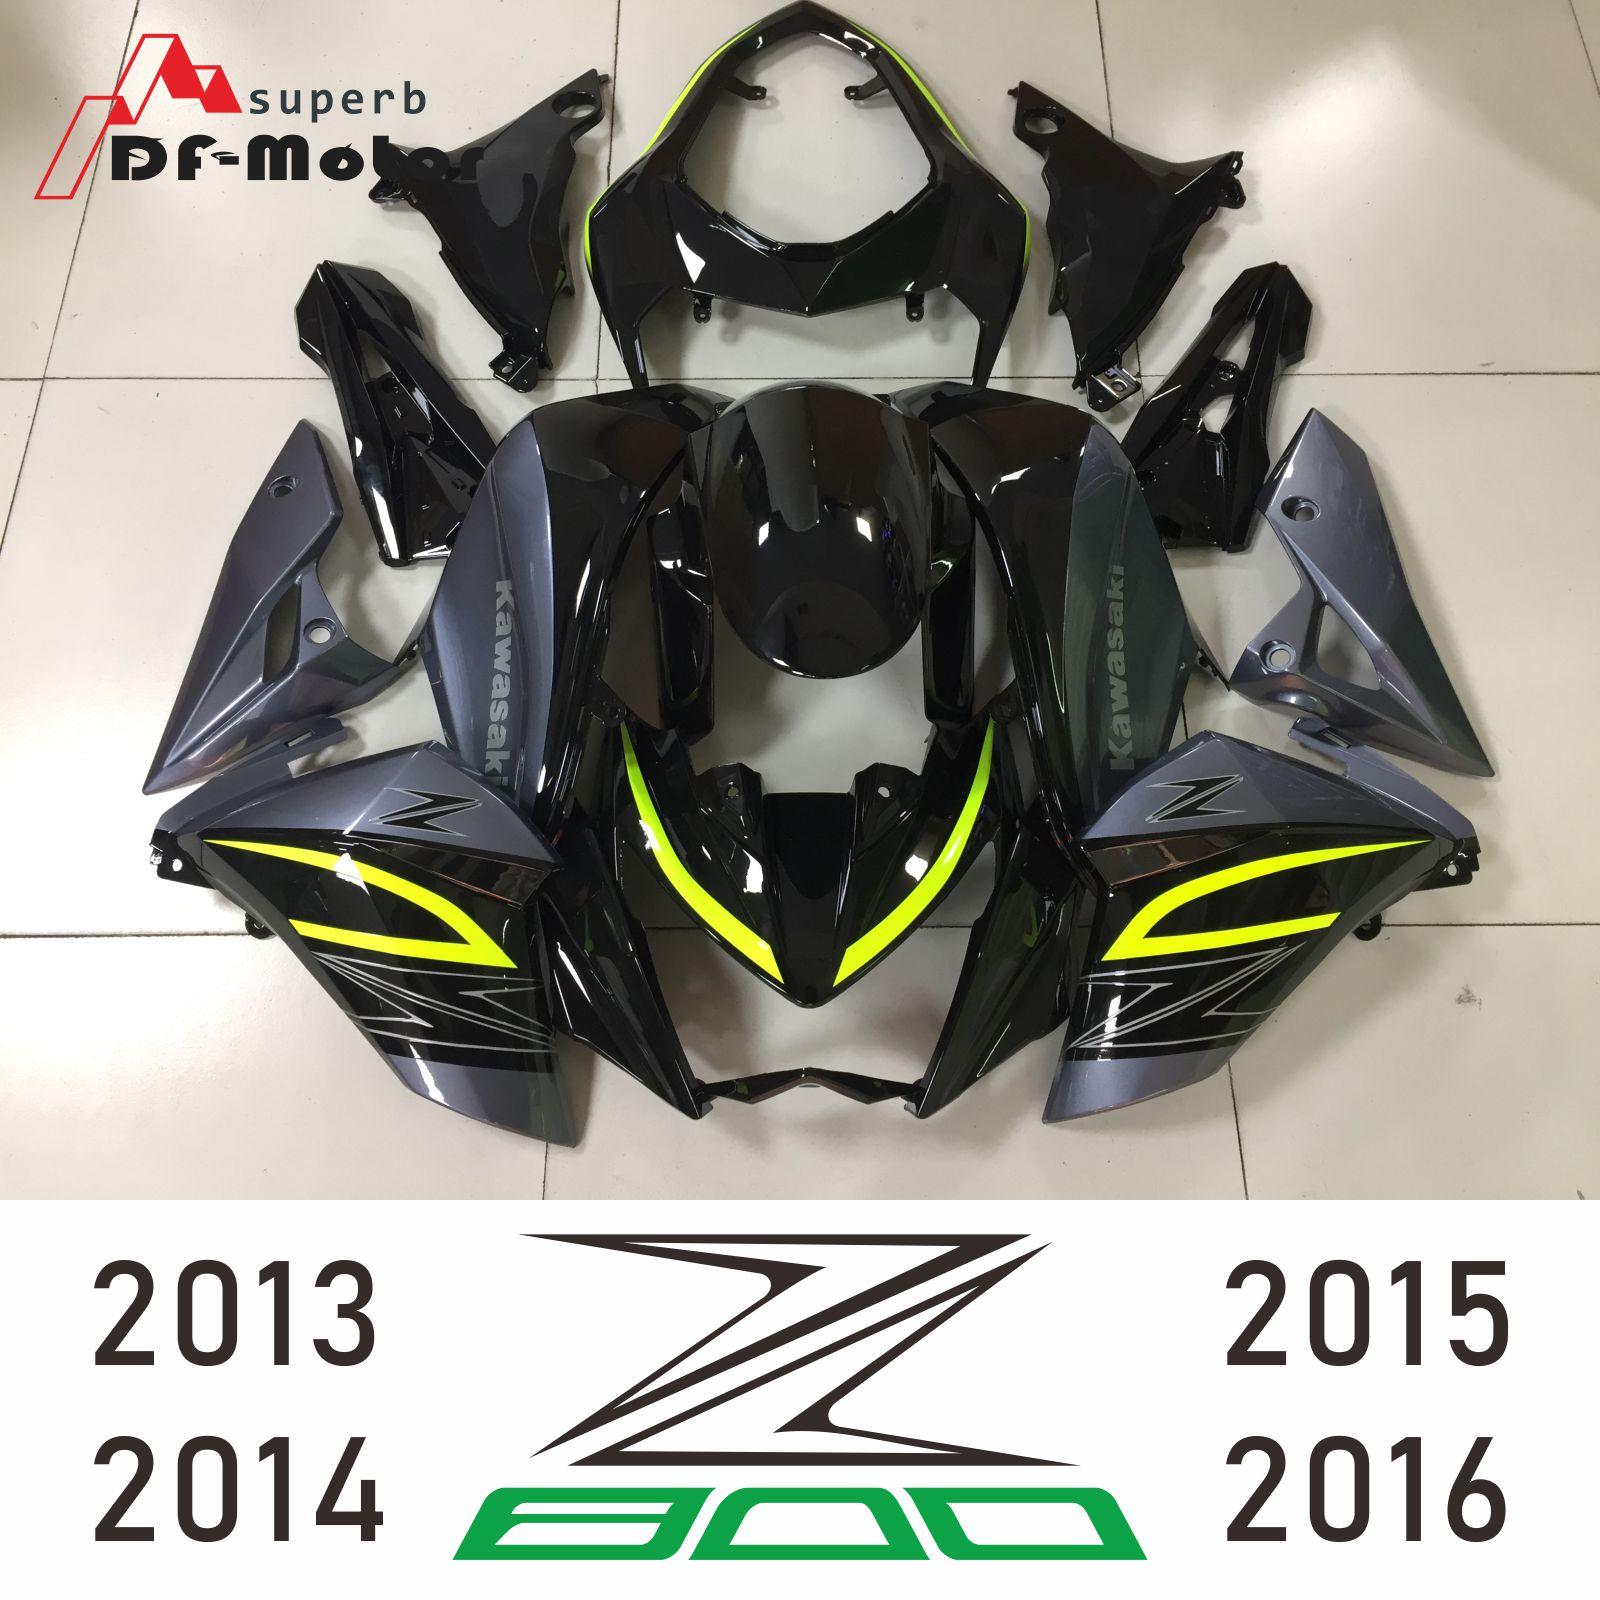 For Kawasaki Z800 2013 2014 2015 2016 Z-800 13 14 15 16 Bodyworks Aftermarket Motorcycle Fairing (Injection Molding)